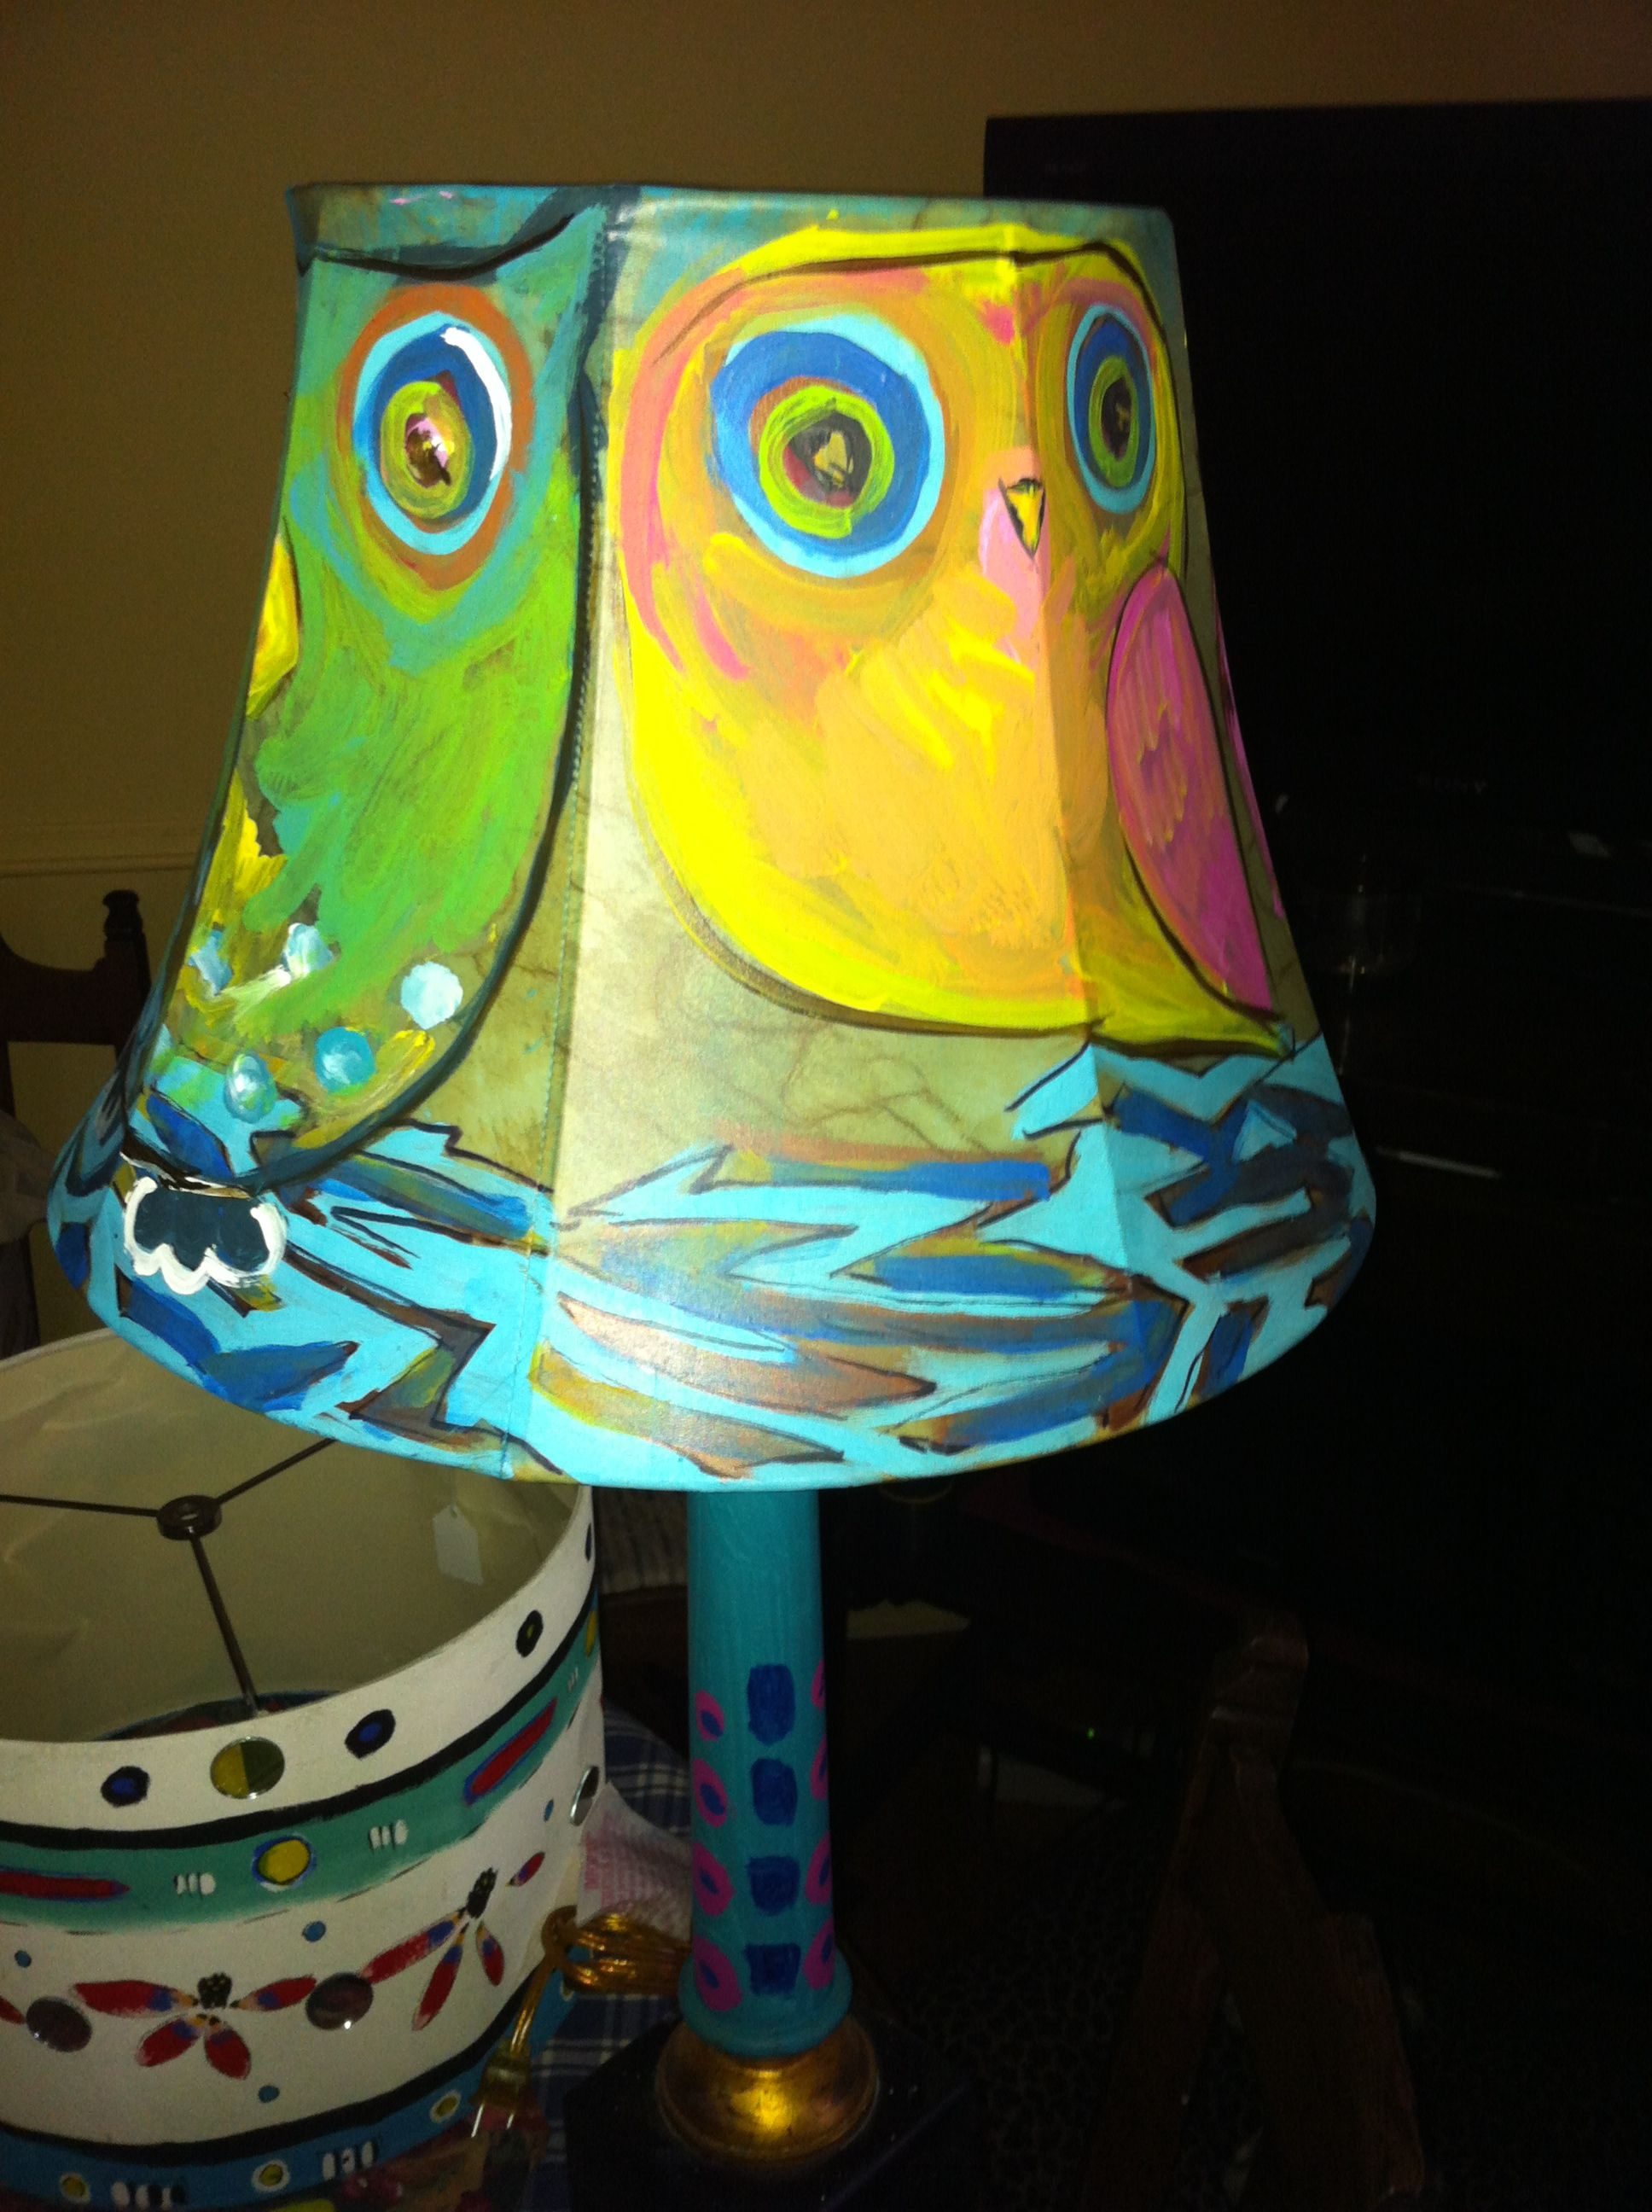 I love owls. I painted this lamp and shade in acrylic ...